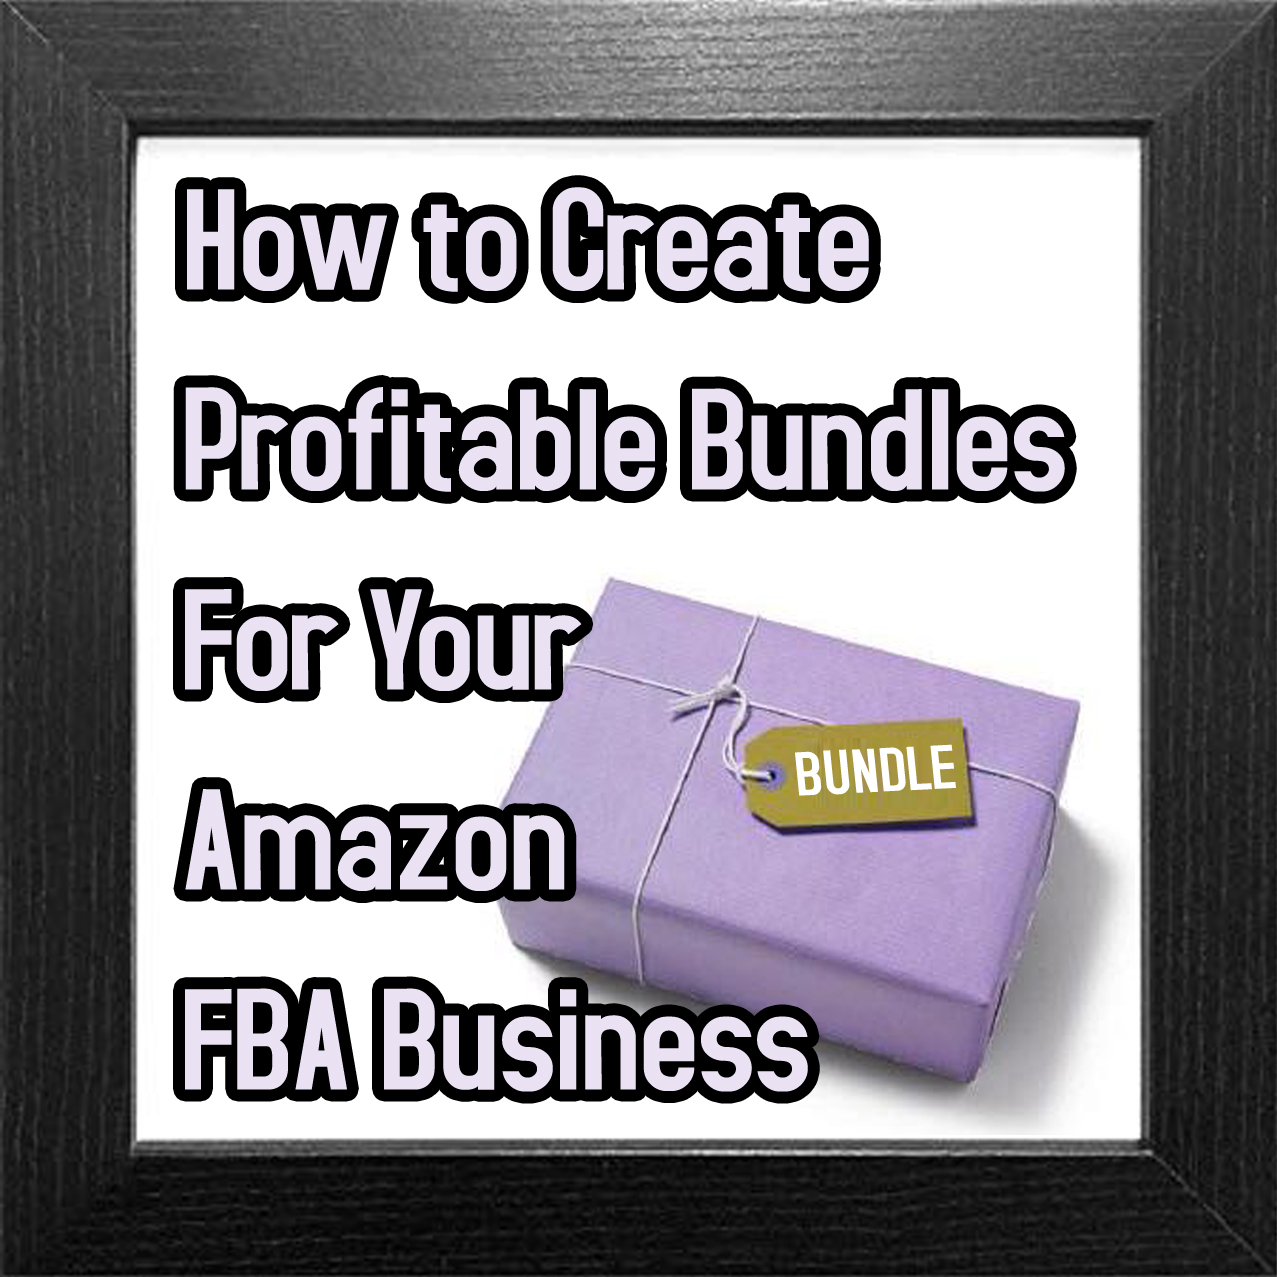 Fbas Beyond Basics Talk By Jessica >> How To Create Profitable Bundles For Your Amazon Fba Business Full